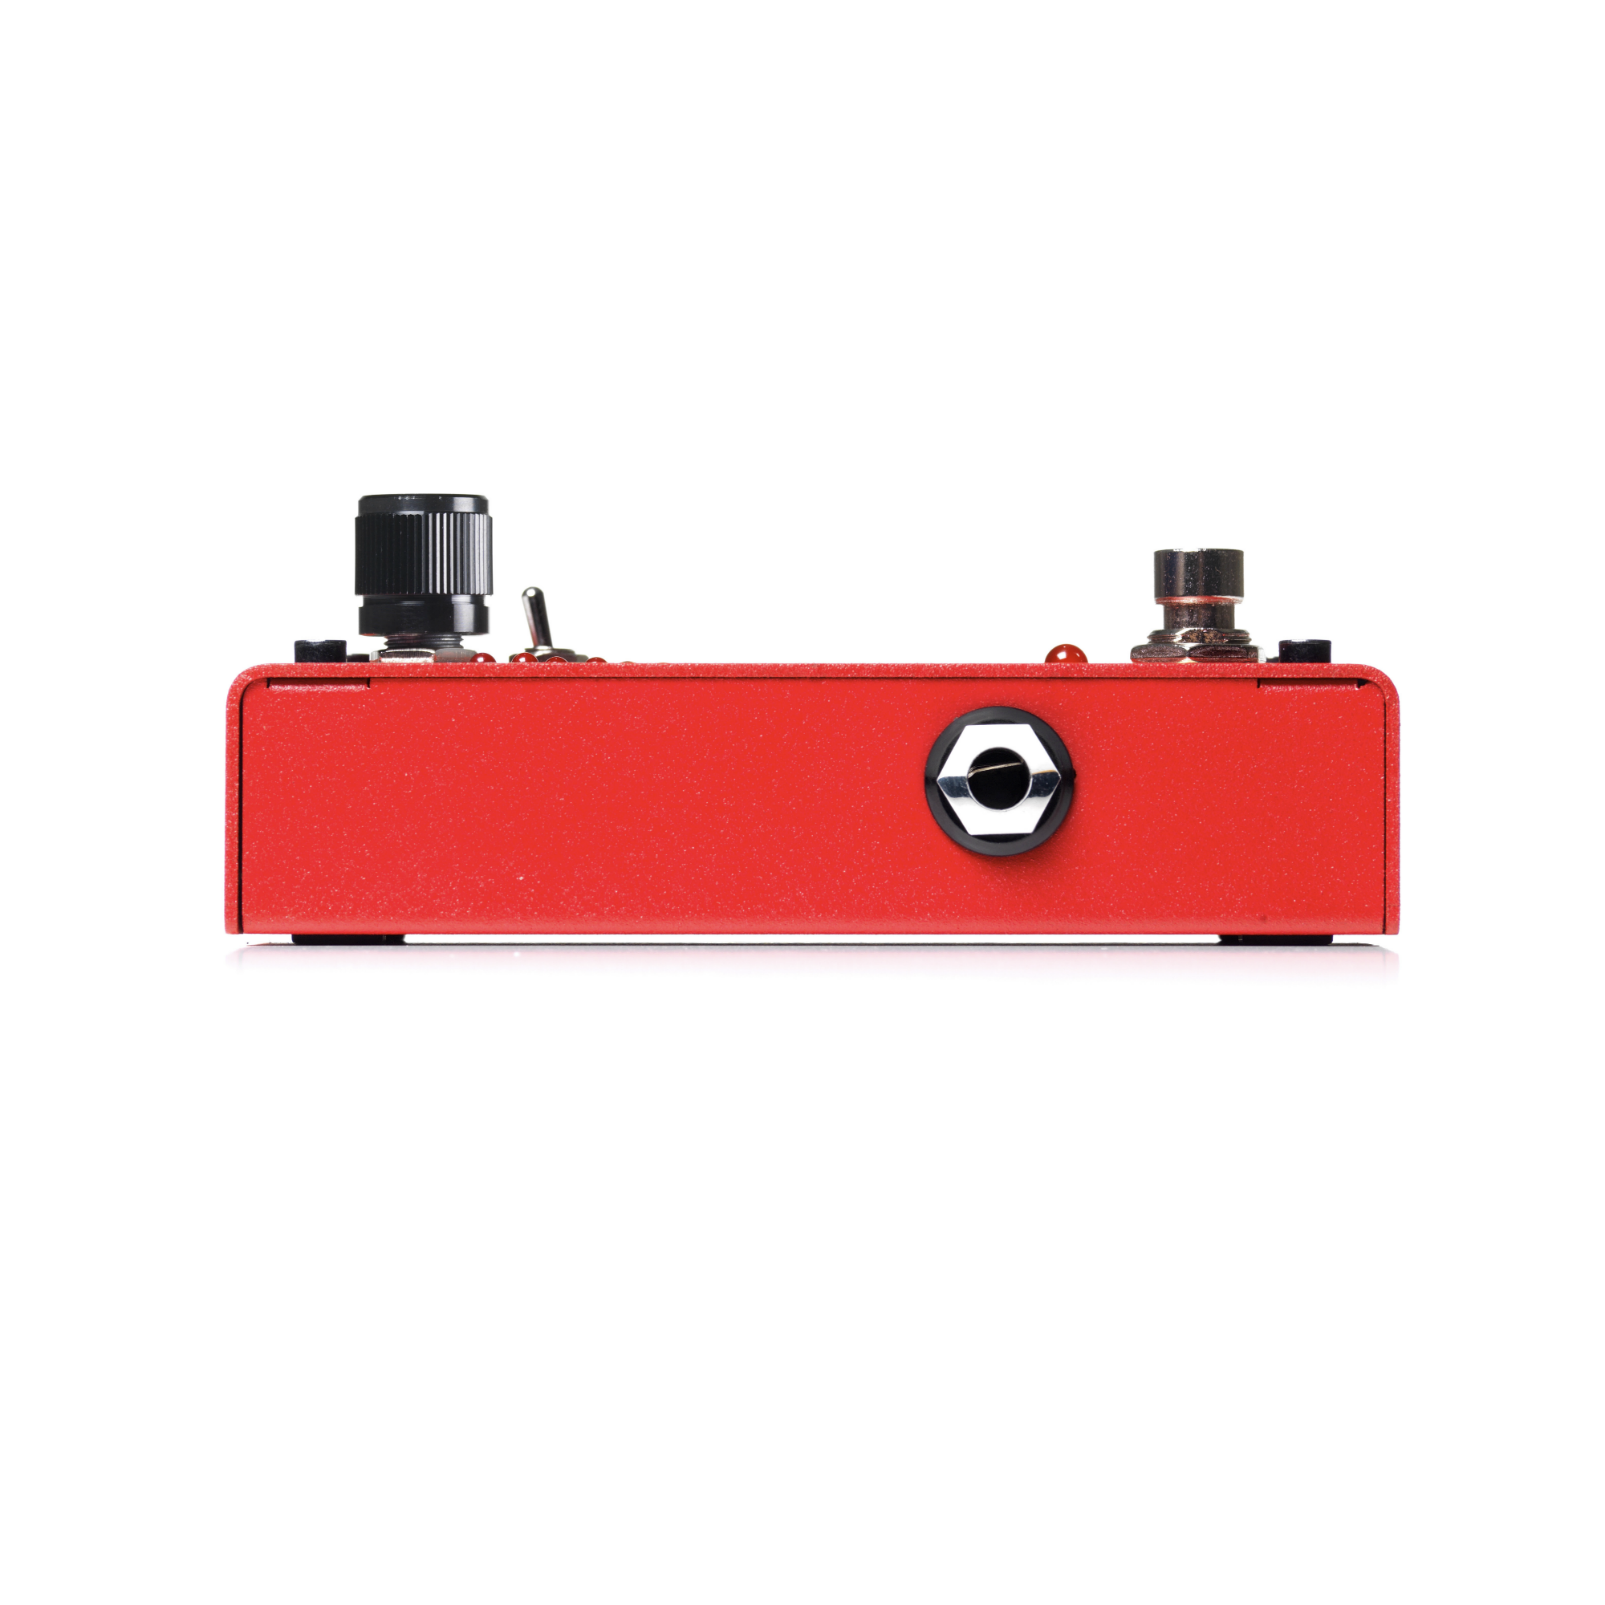 The Drop - Red - Polyphonic Drop Tune Pedal - Left